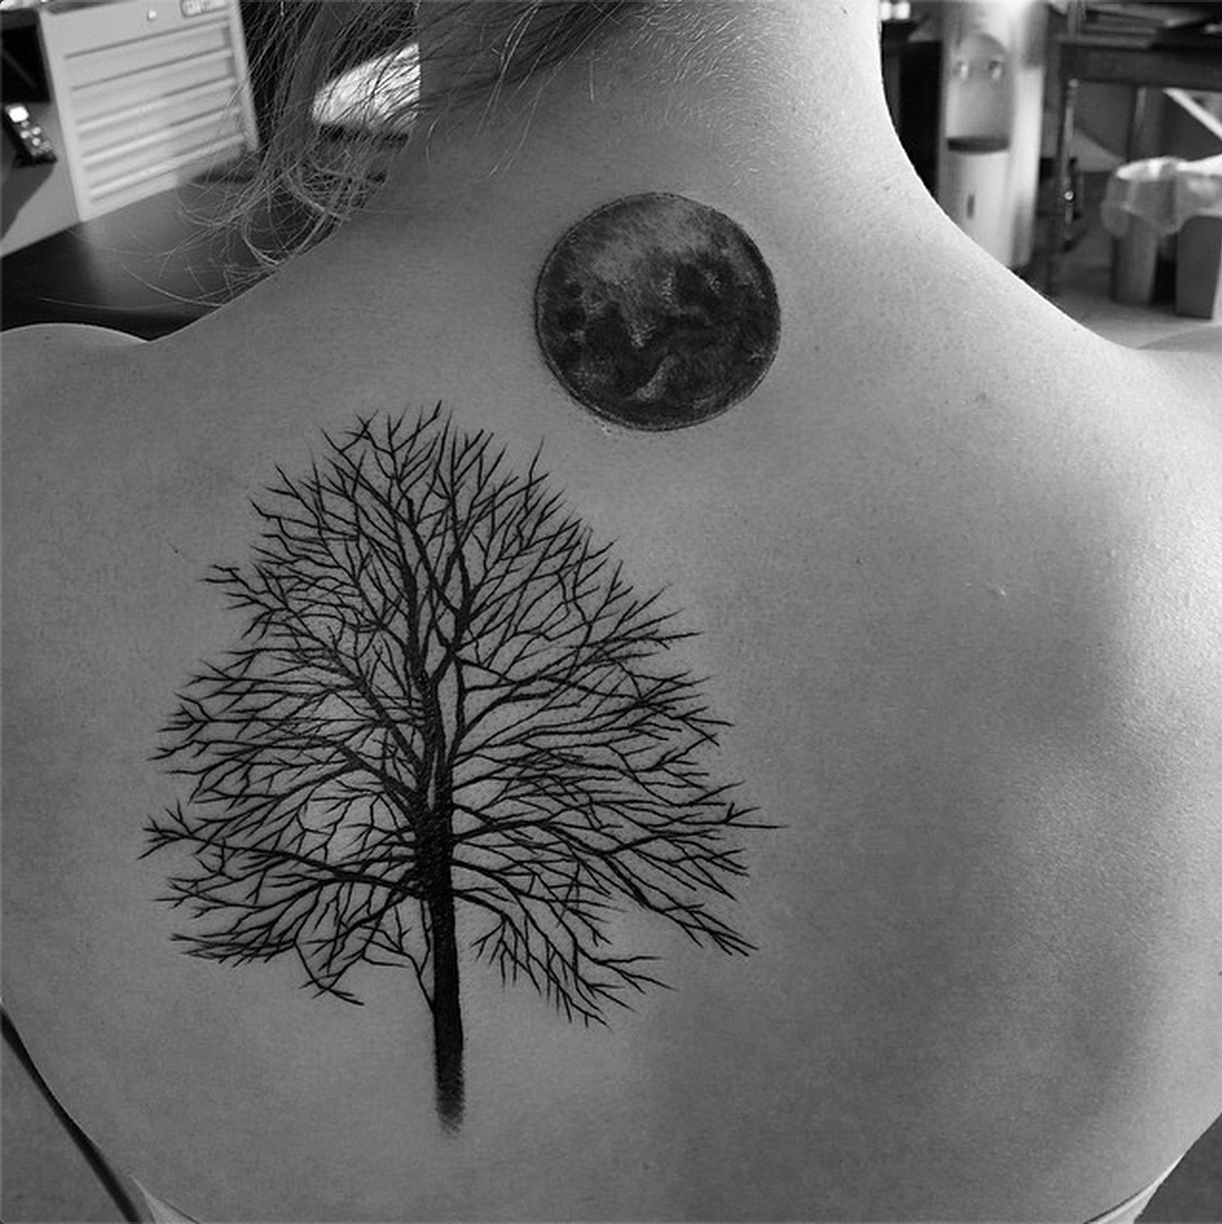 Moon and Tree tattoo by Karrie Arthurs from Calgary. Check